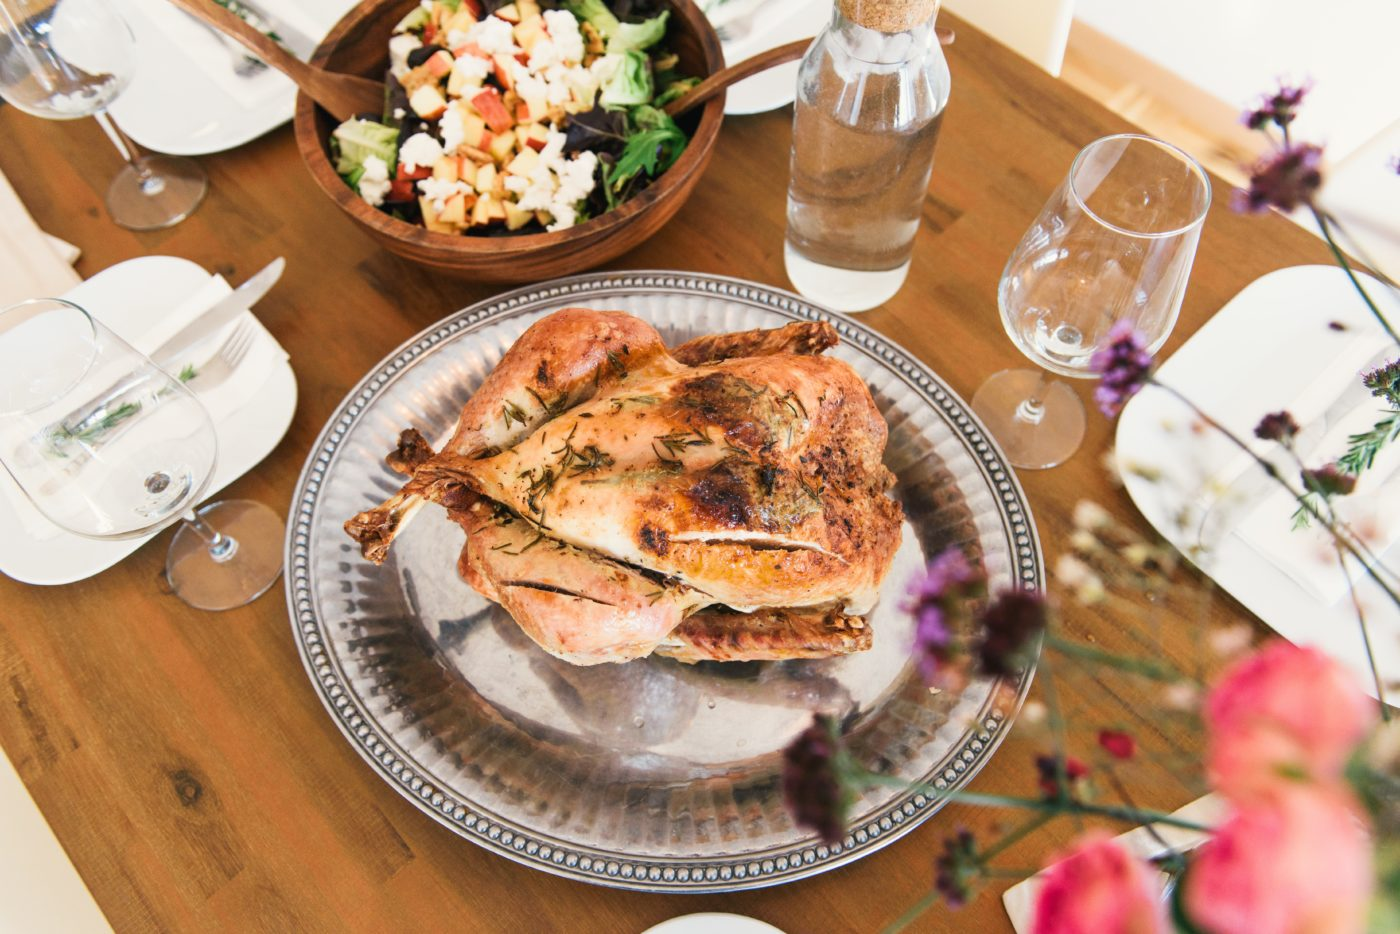 Thanksgiving starts the planning for the close of the year. Why not kick off the holiday season with a stress-free dinner? Using these tips, you will have a fun, easygoing Thanksgiving dinner.